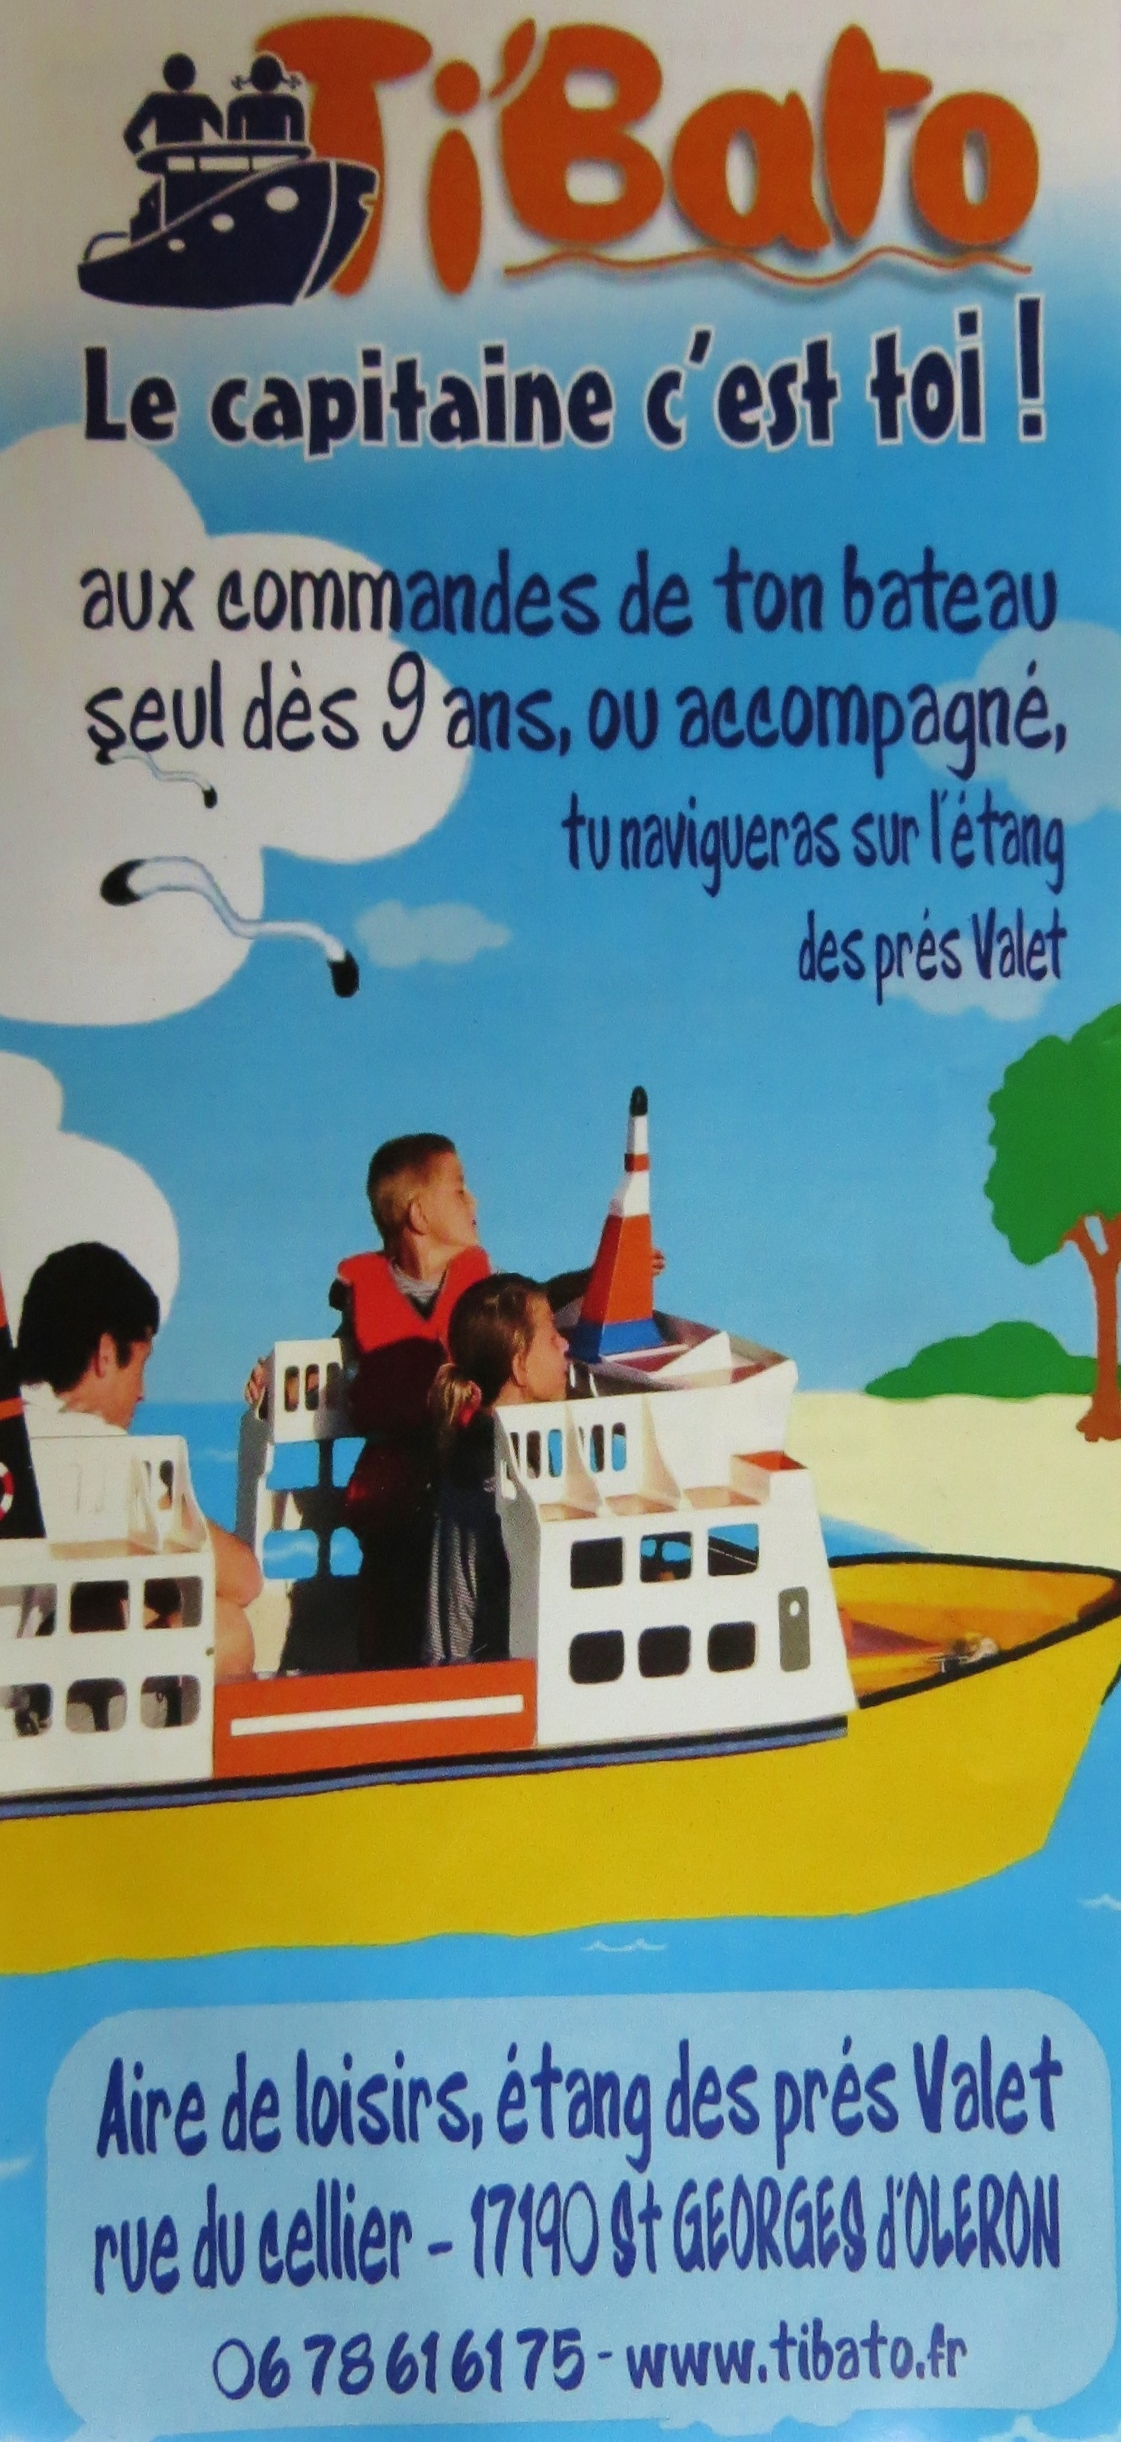 Things to do on Ile d'Oleron